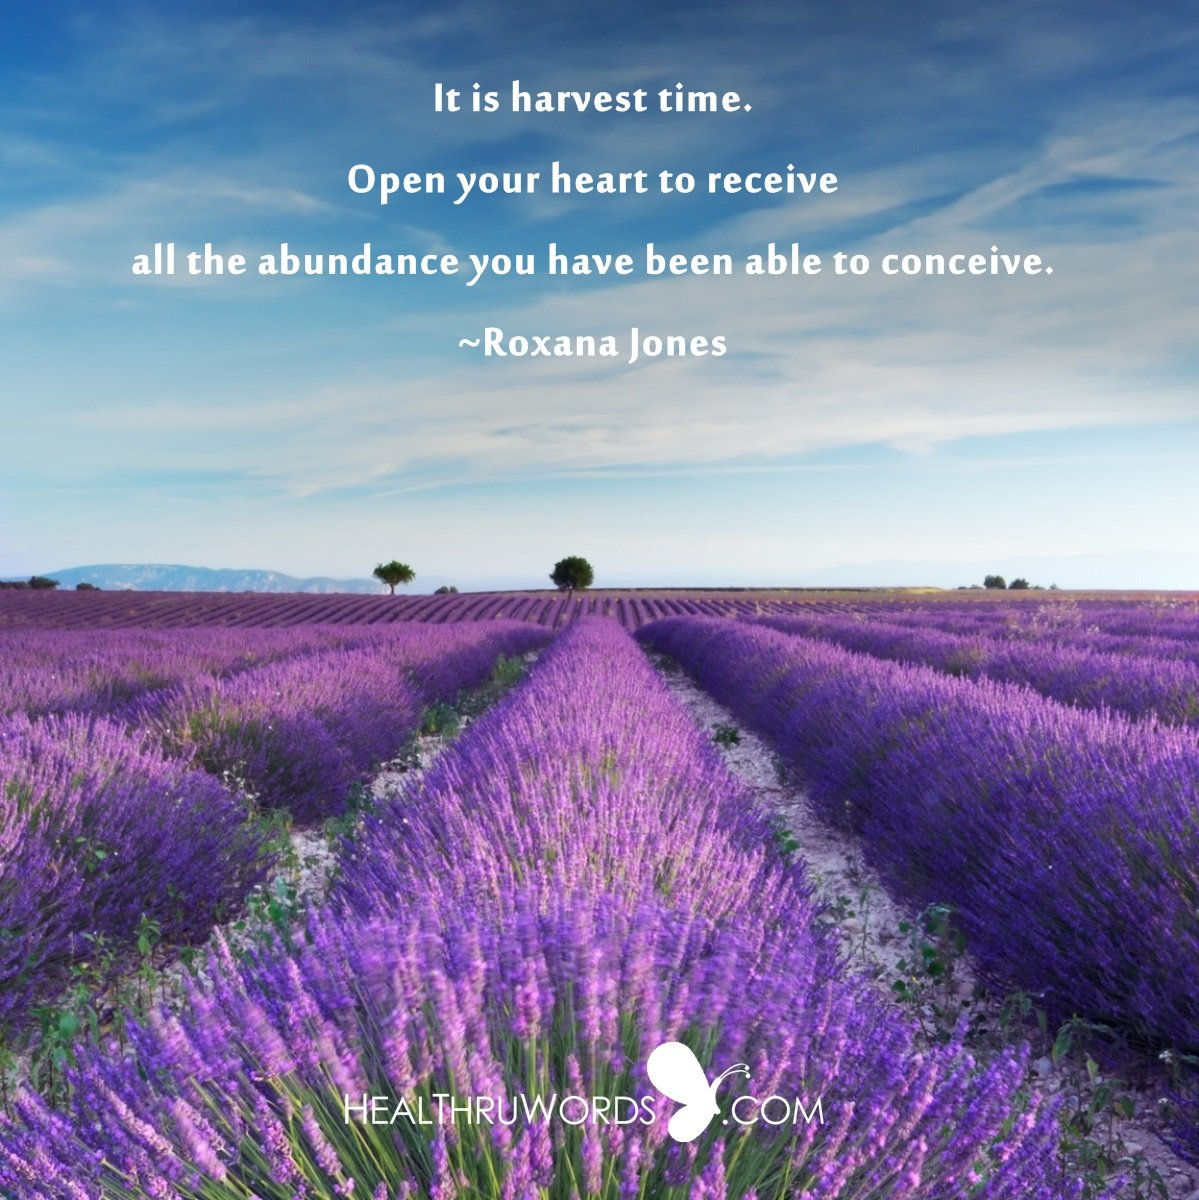 Inspirational Image: Your Harvest